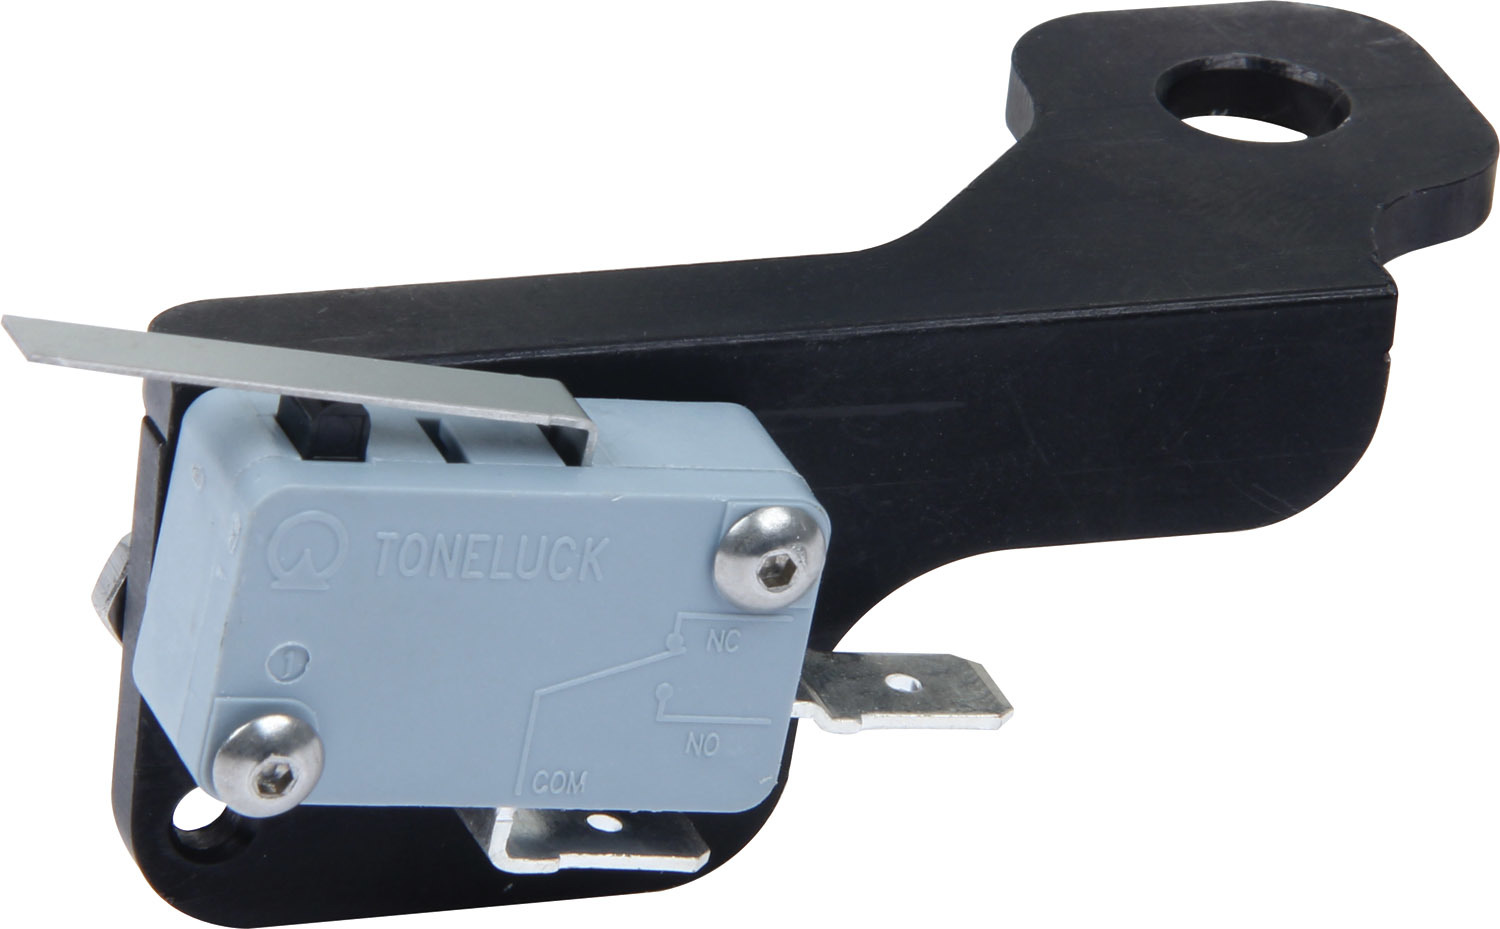 WOT Micro Switch Bracket 4500